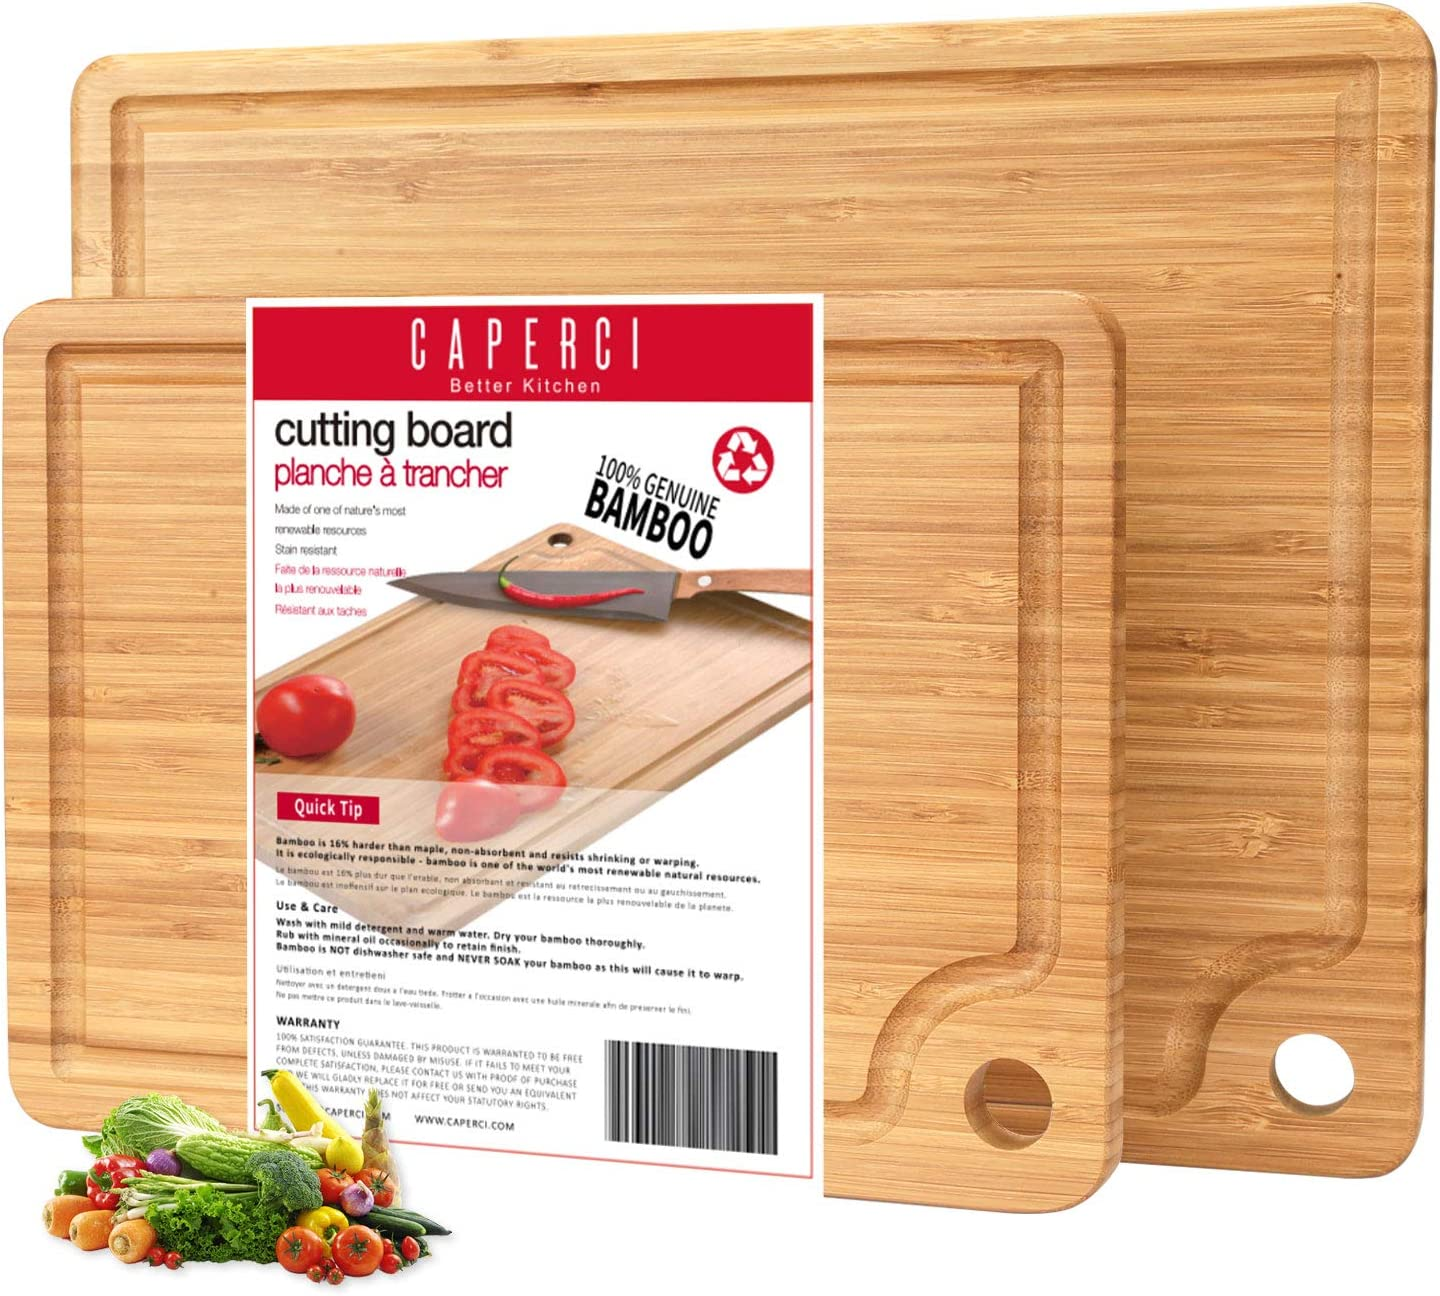 Modern Cutting Board Set - Caperci Optimal 2-Piece Organic Bamboo Chopping Boards for Kitchen Meat Vegetables Cheese Serving (14 x 11 & 11 x 8 Inch)